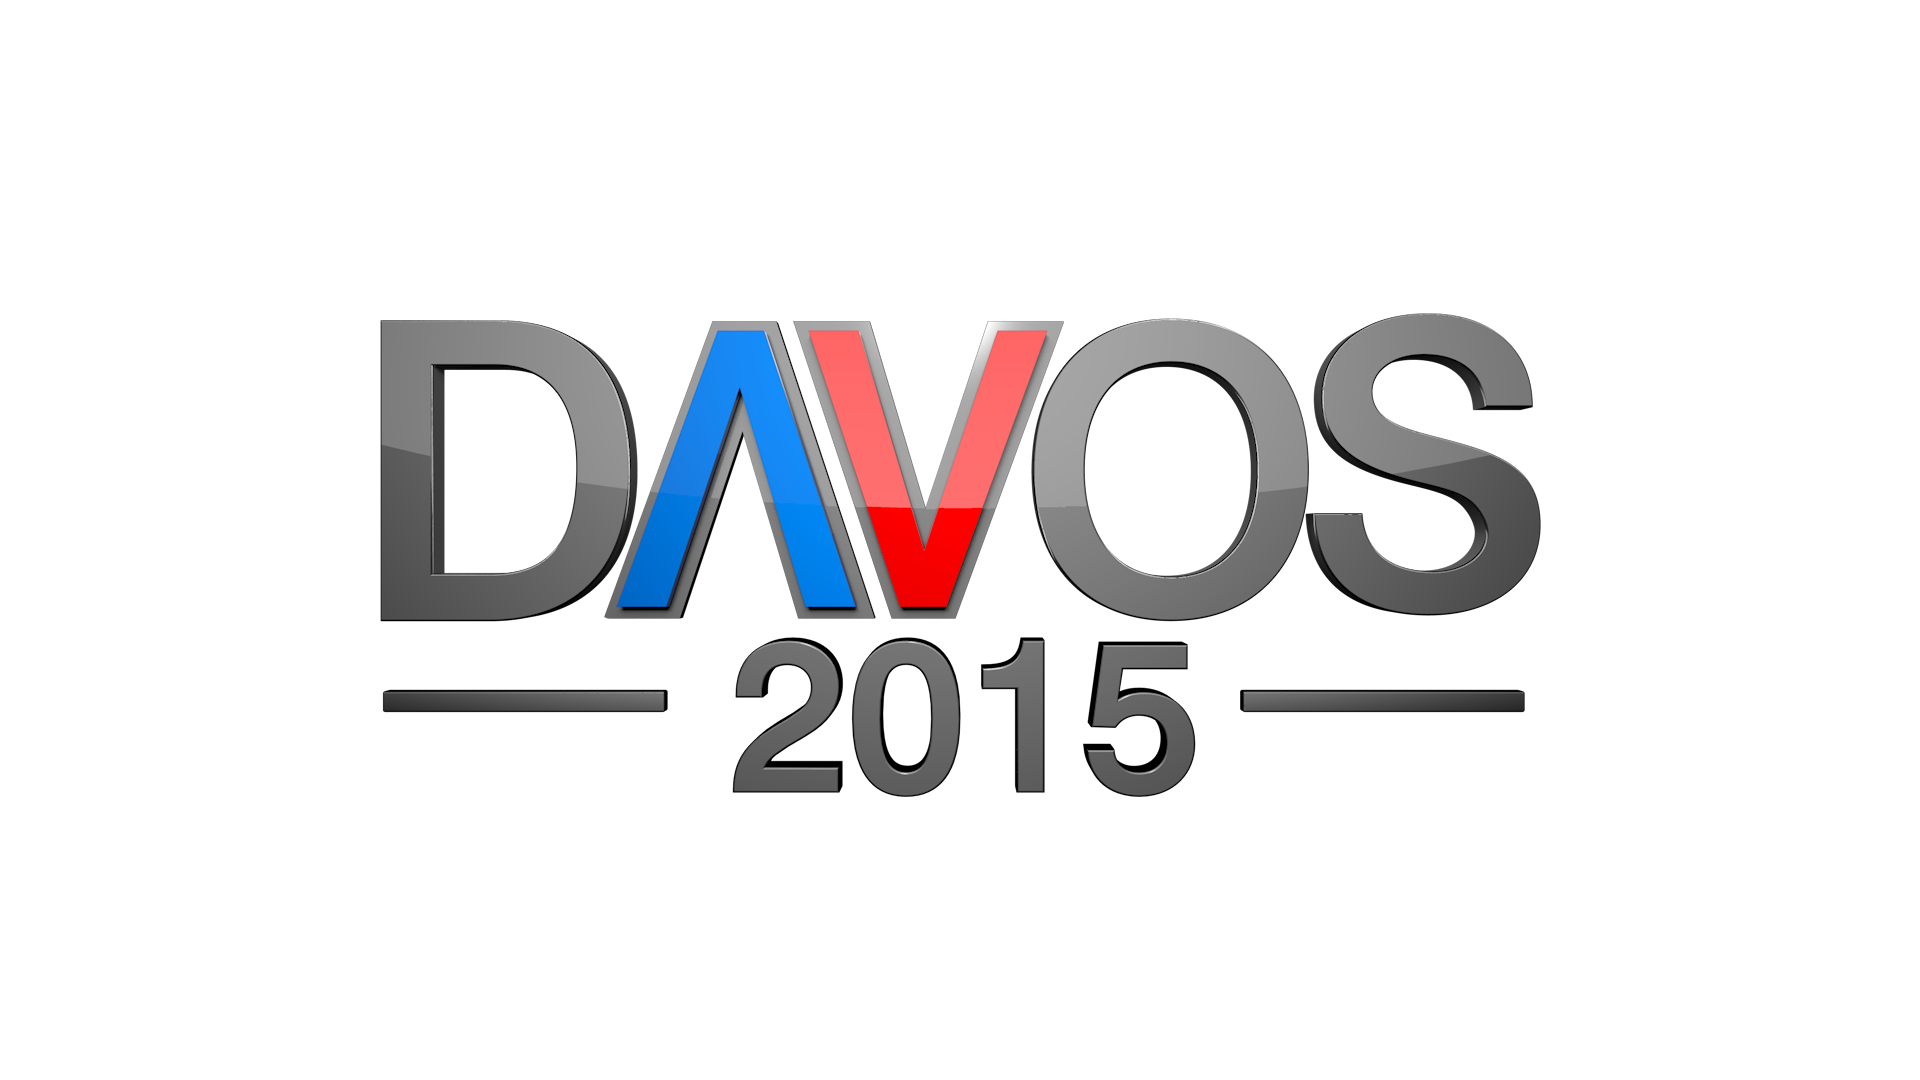 Davos 2015: Complete coverage